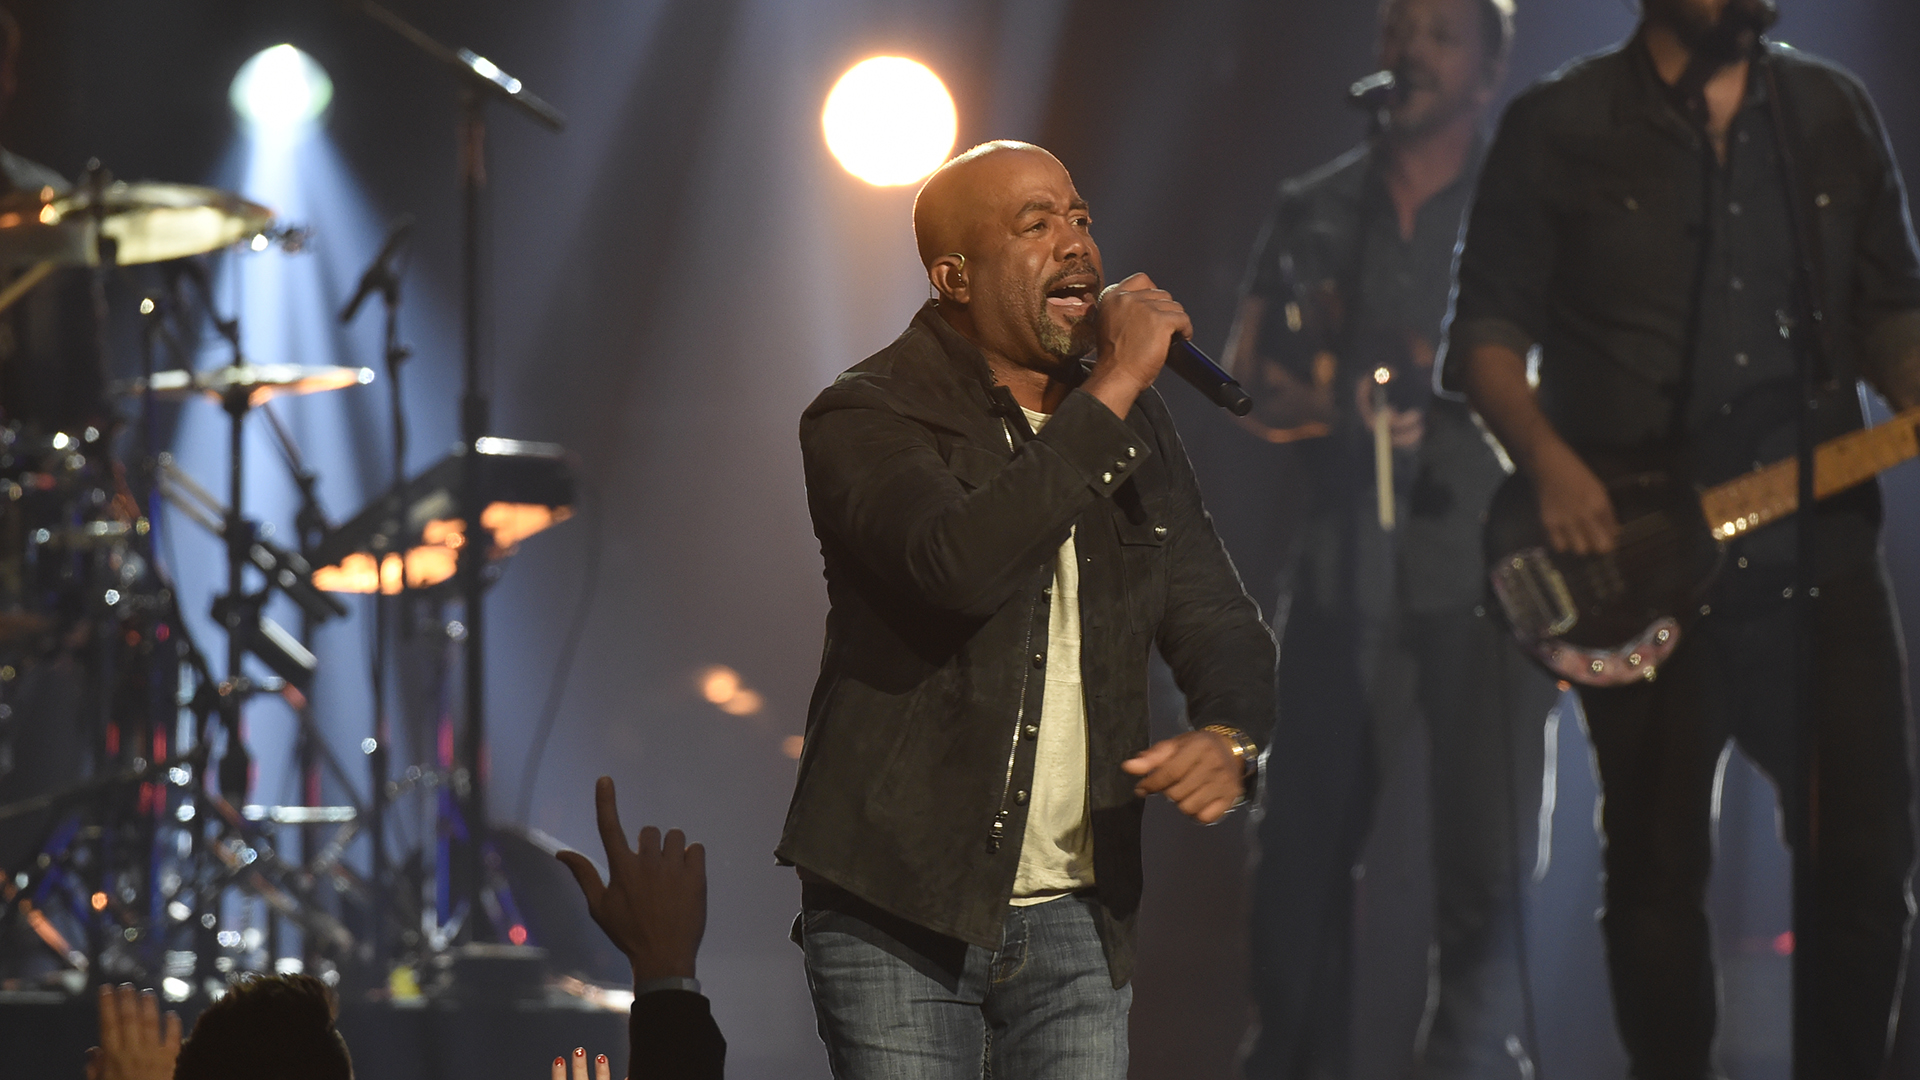 Darius Rucker gets the crowd going with